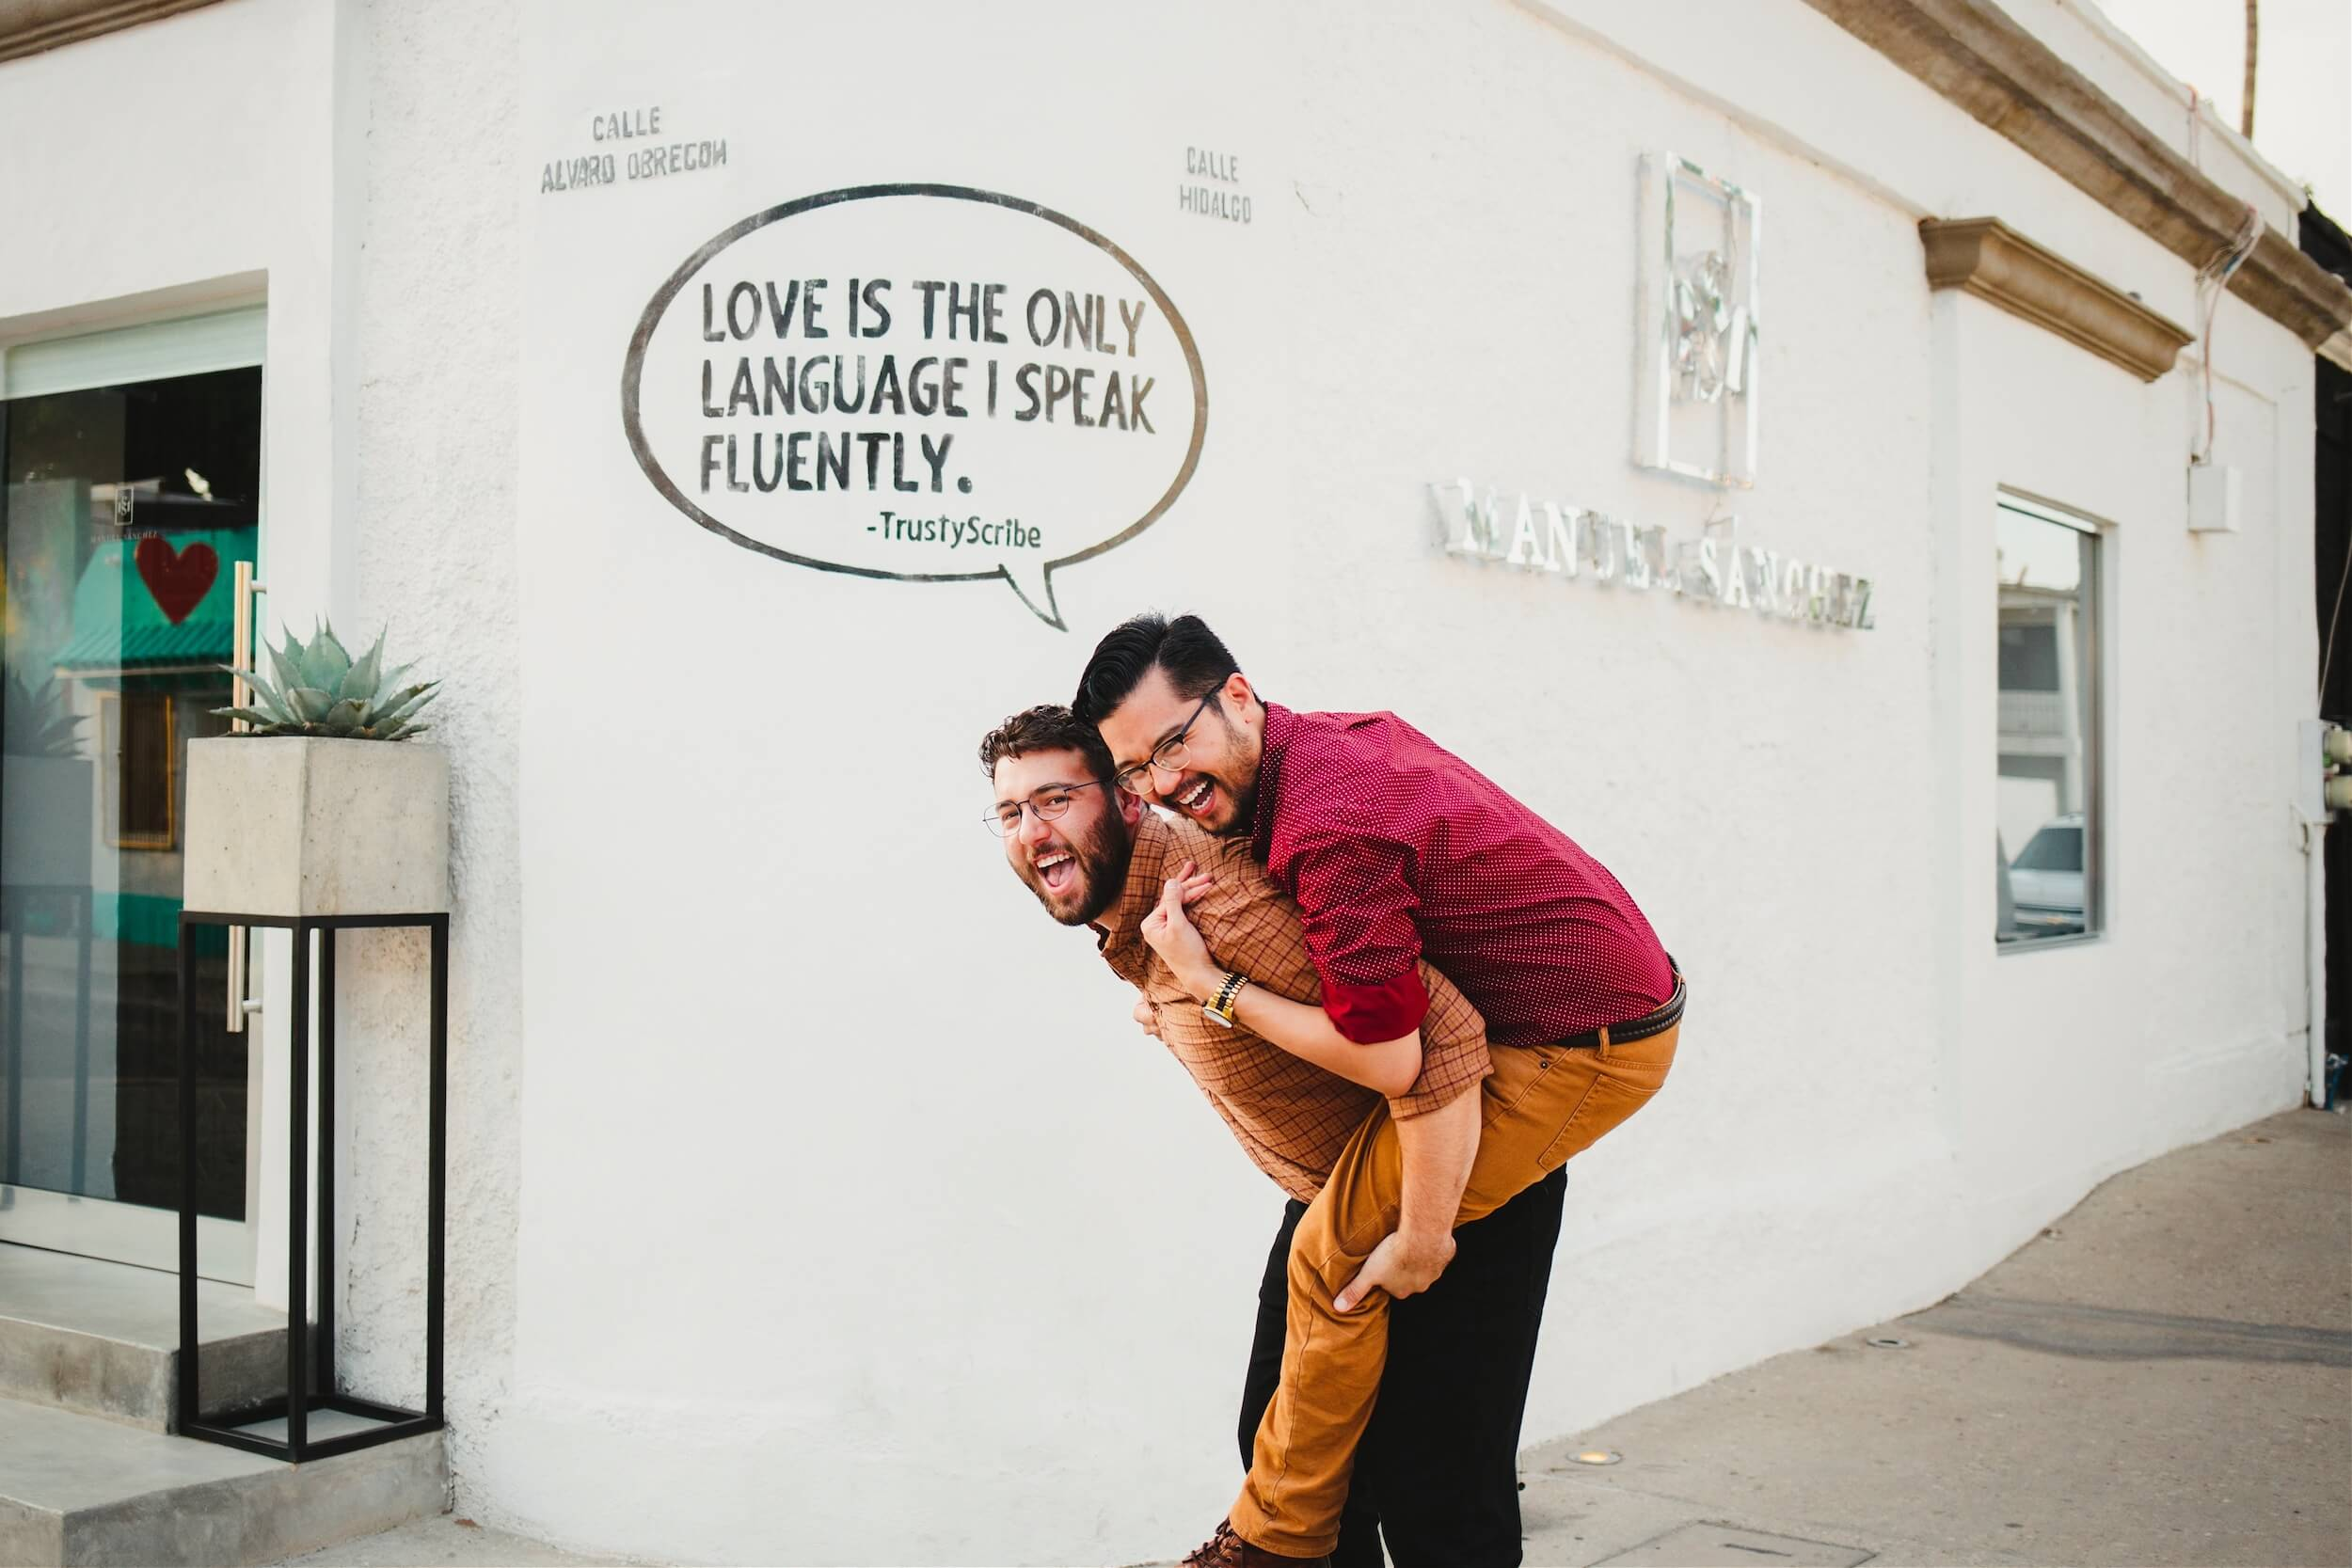 A male couple laughs in front of a painted wall in Cabo San Lucas, Mexico.